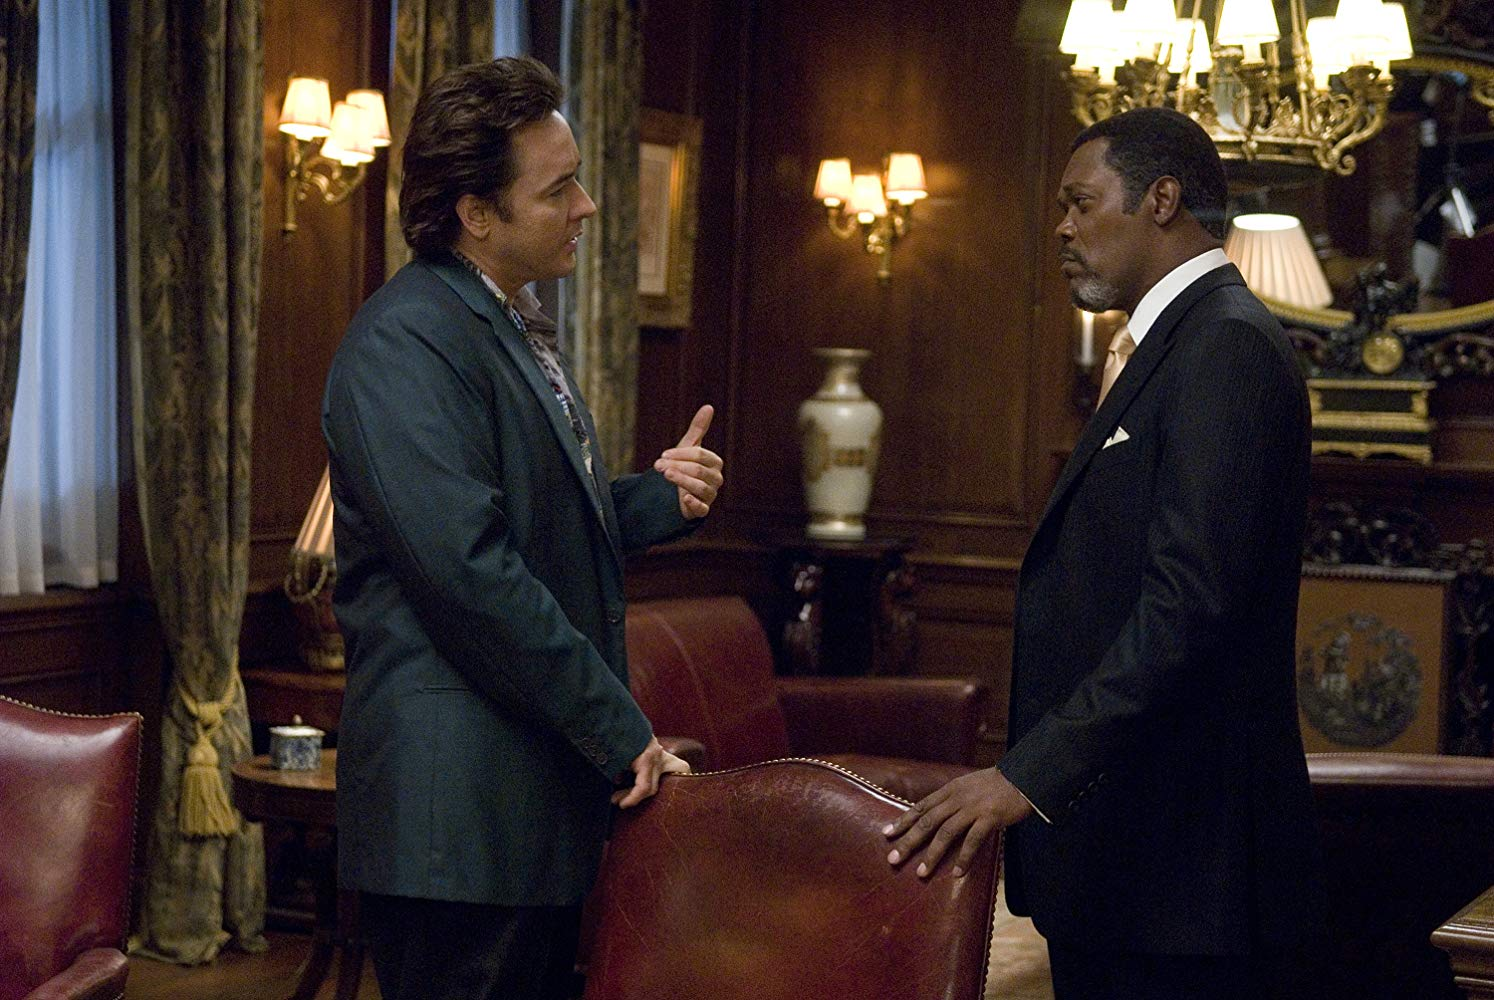 (l to r) Ghost hunter John Cusack and hotel manager Samuel L. Jackson in 1408 (2007)